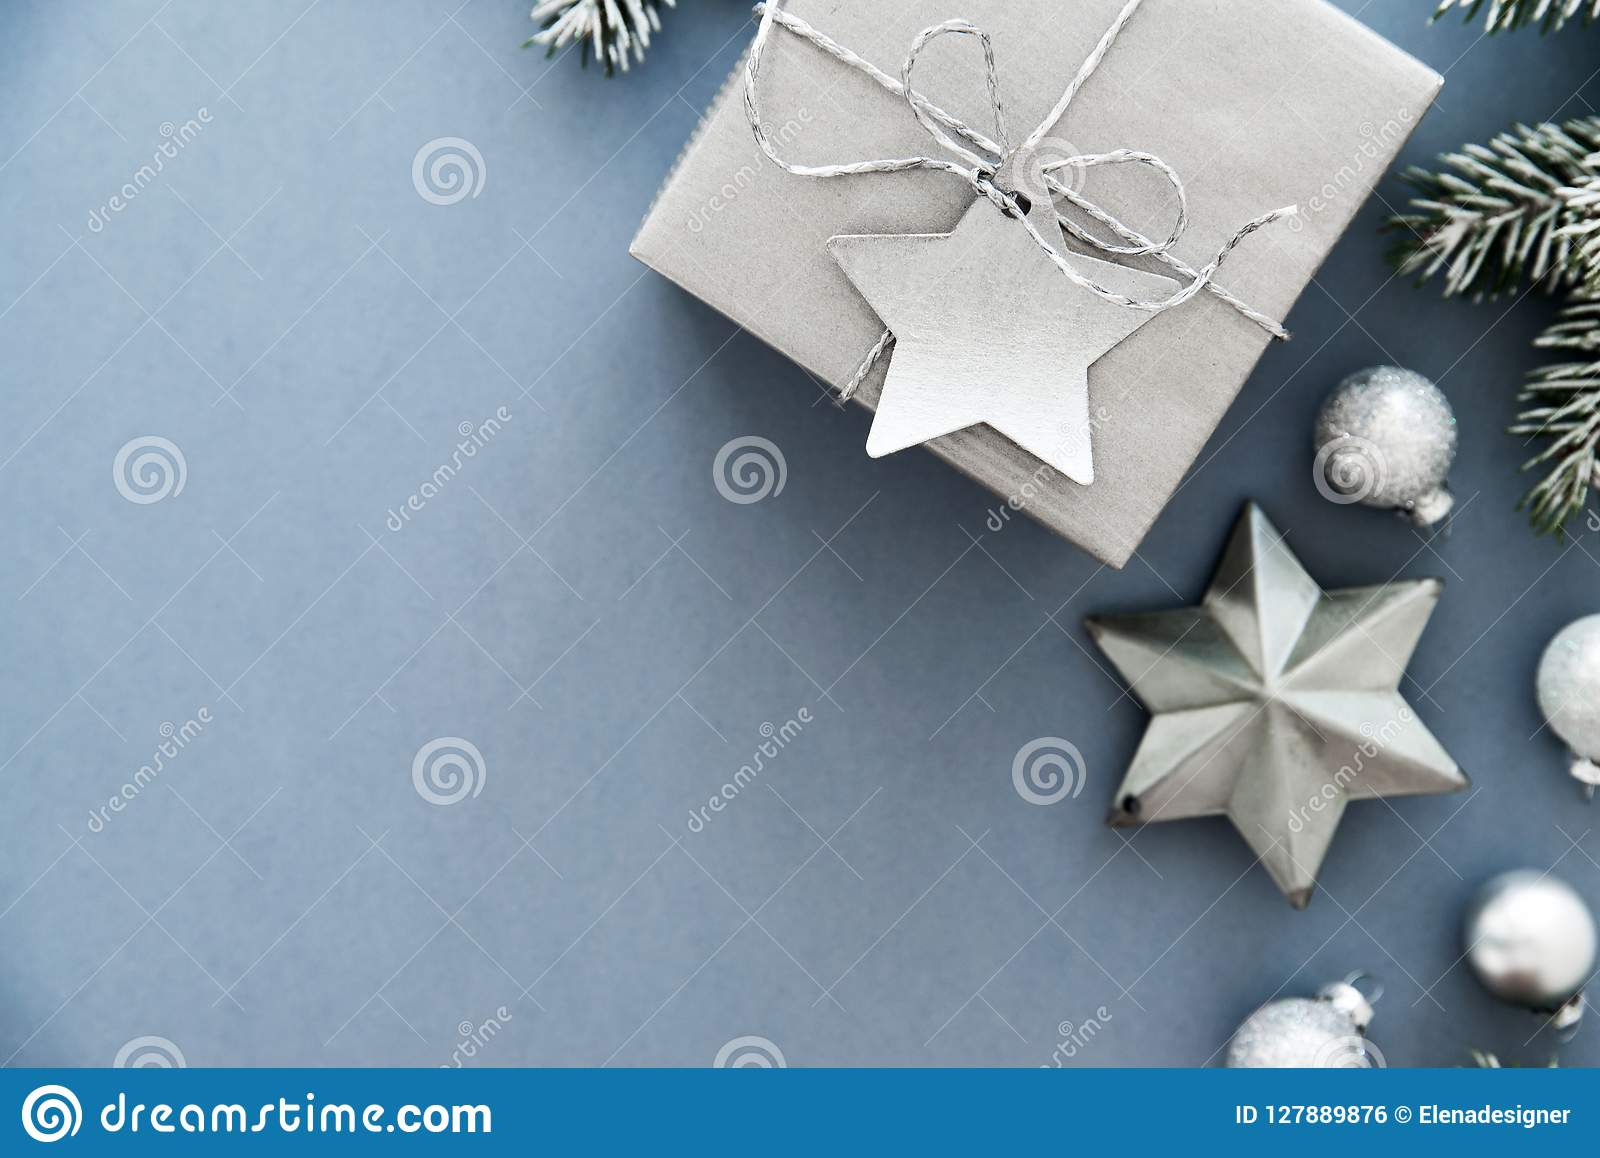 Christmas silver handmade gift boxes on blue background top view. Merry Christmas greeting card, frame. Winter xmas holiday theme.